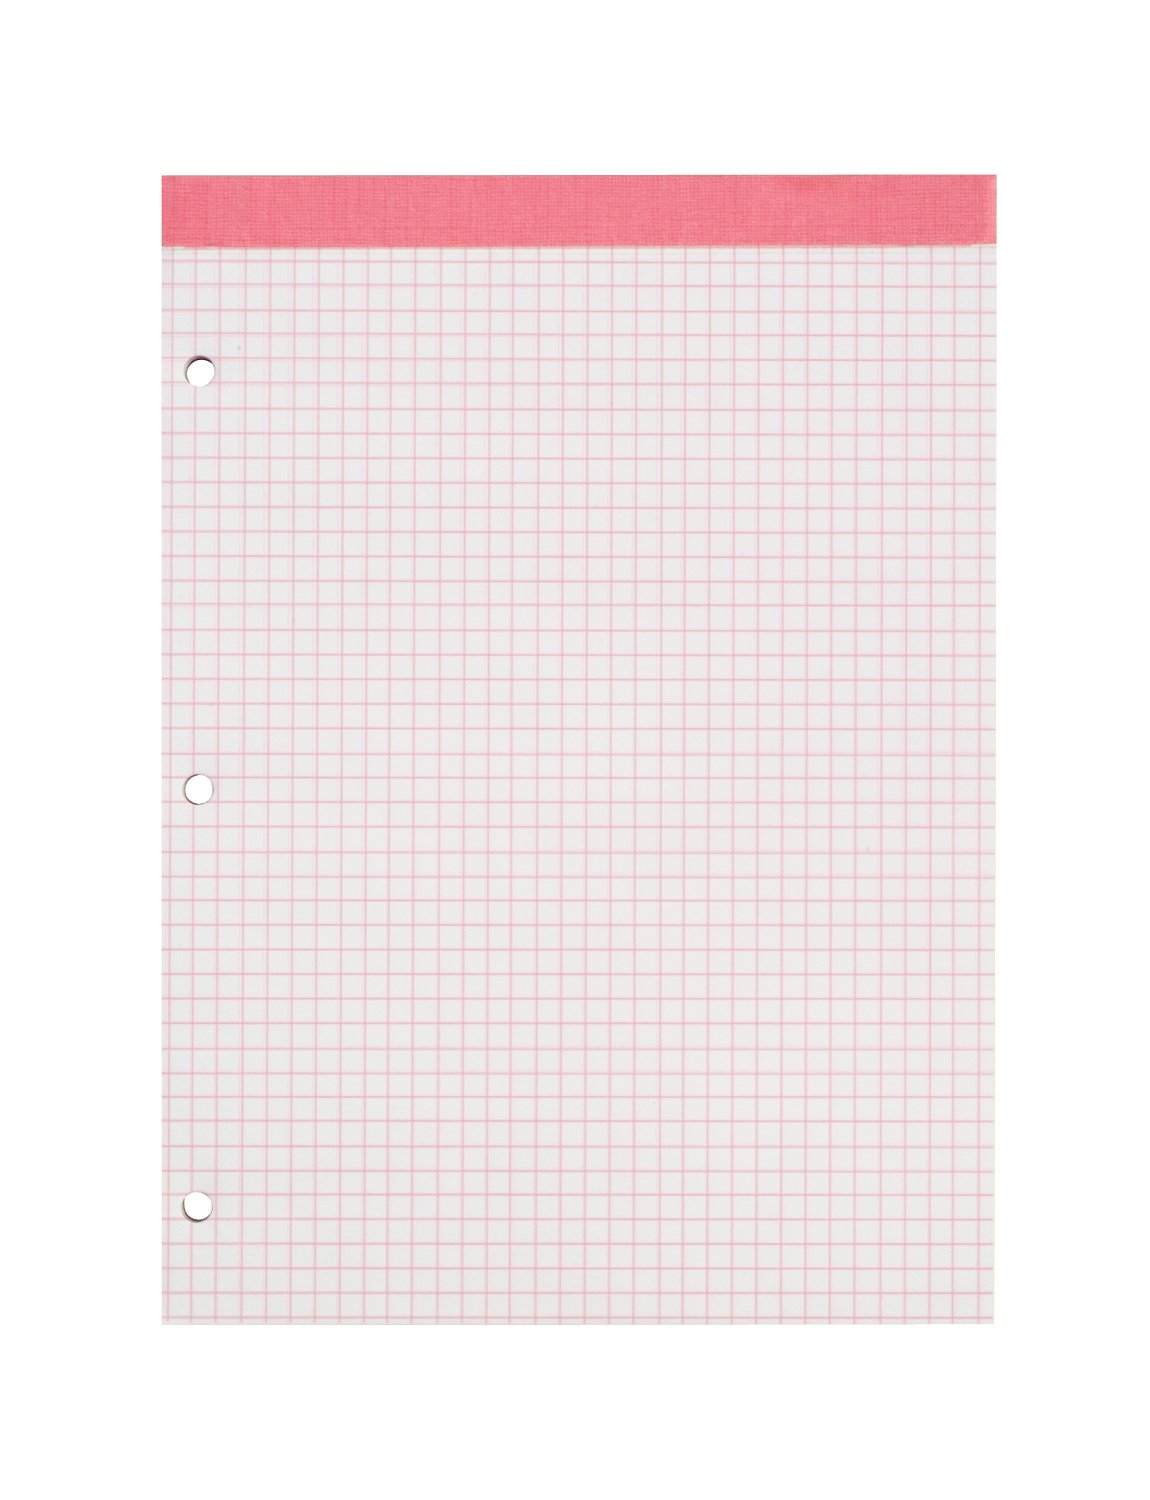 Ampad 20-287, Evidence Dual Pads, Letter Size, Pink Ruling 4 sq. / In. 100 Sheets Per Pad, 1 Each